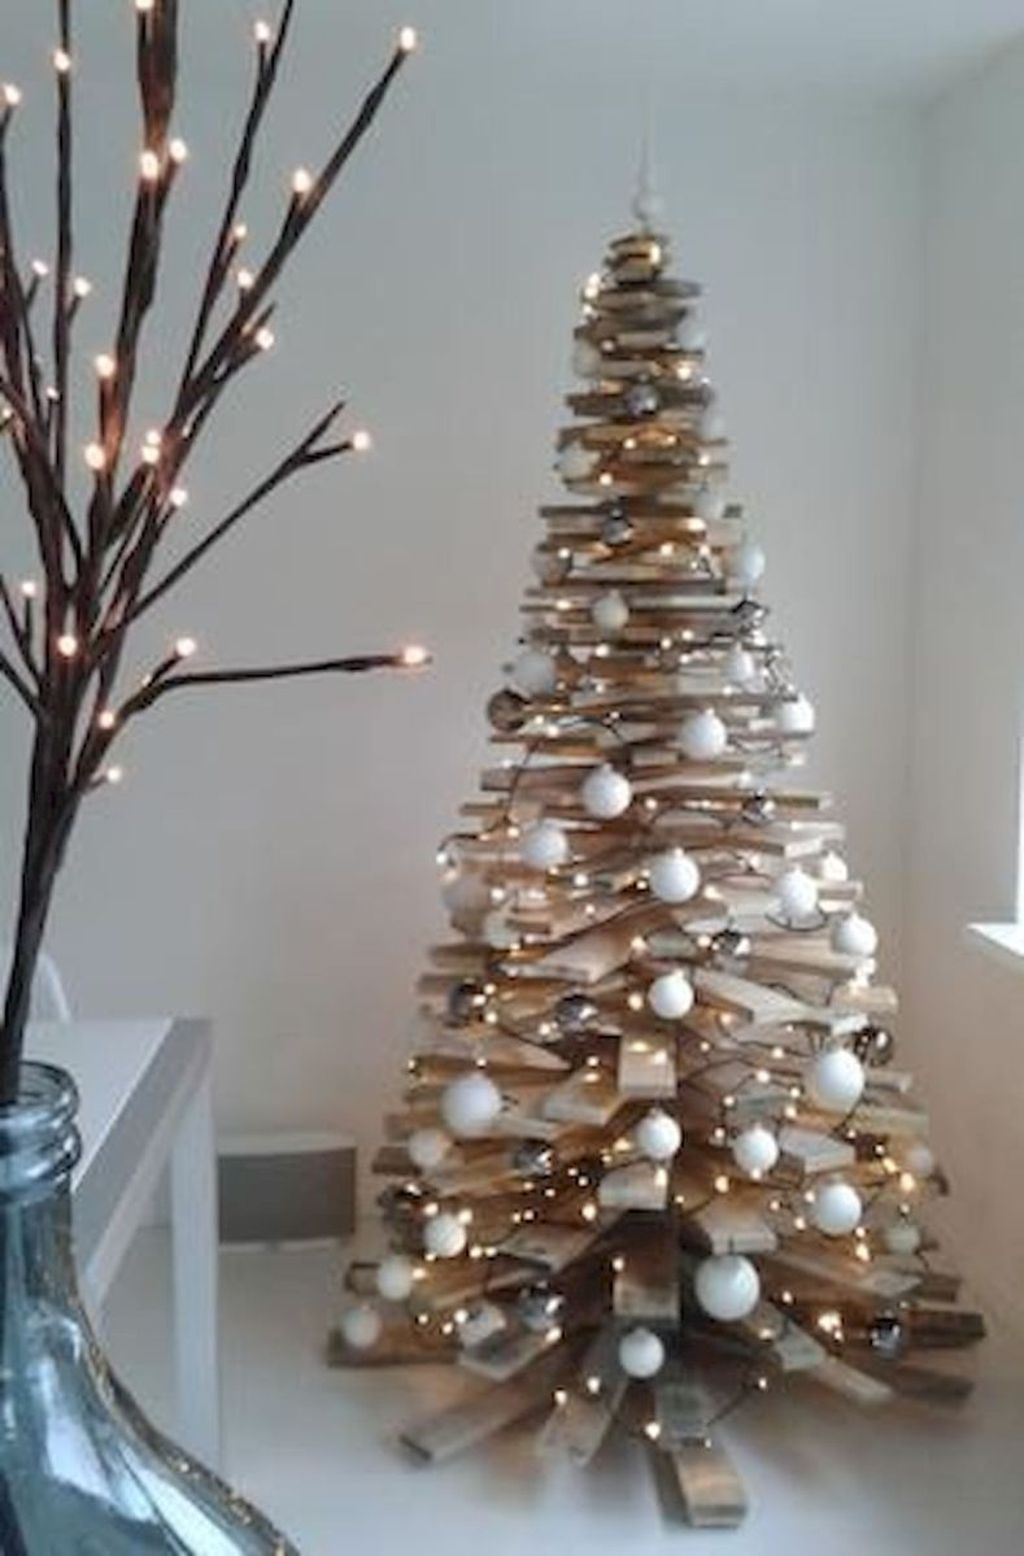 Amazing Christmas Lights Tree Decoration Ideas 01